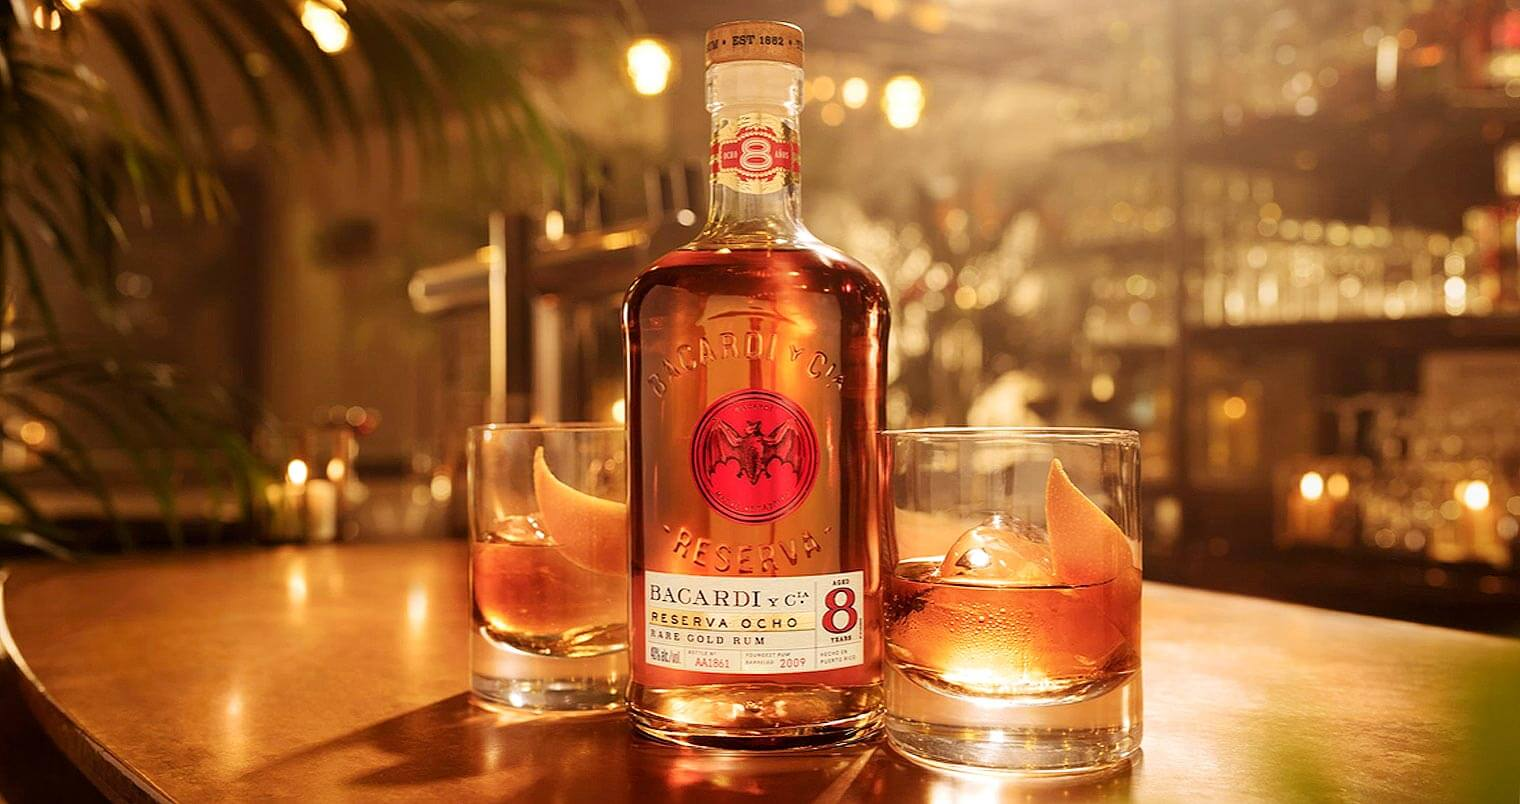 Ocho Old Fashioned, bottle and cocktails on bar table, featured image